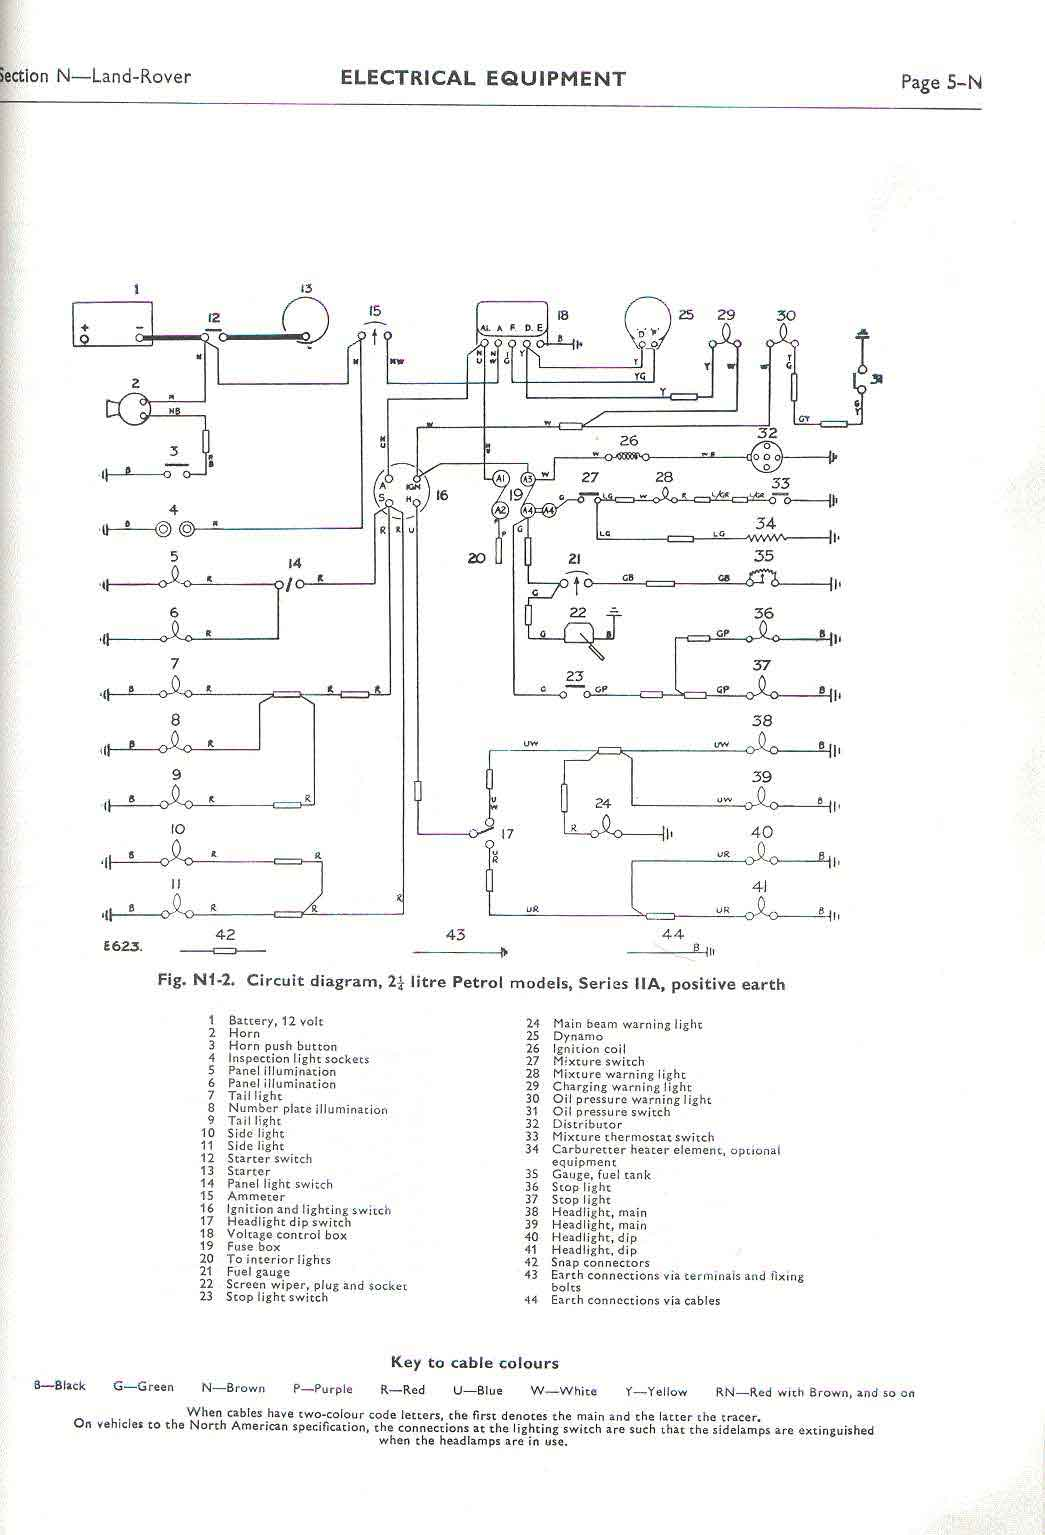 SIIA+VE land rover wiring diagram land rover radio wiring \u2022 free wiring land rover wiring harness at virtualis.co